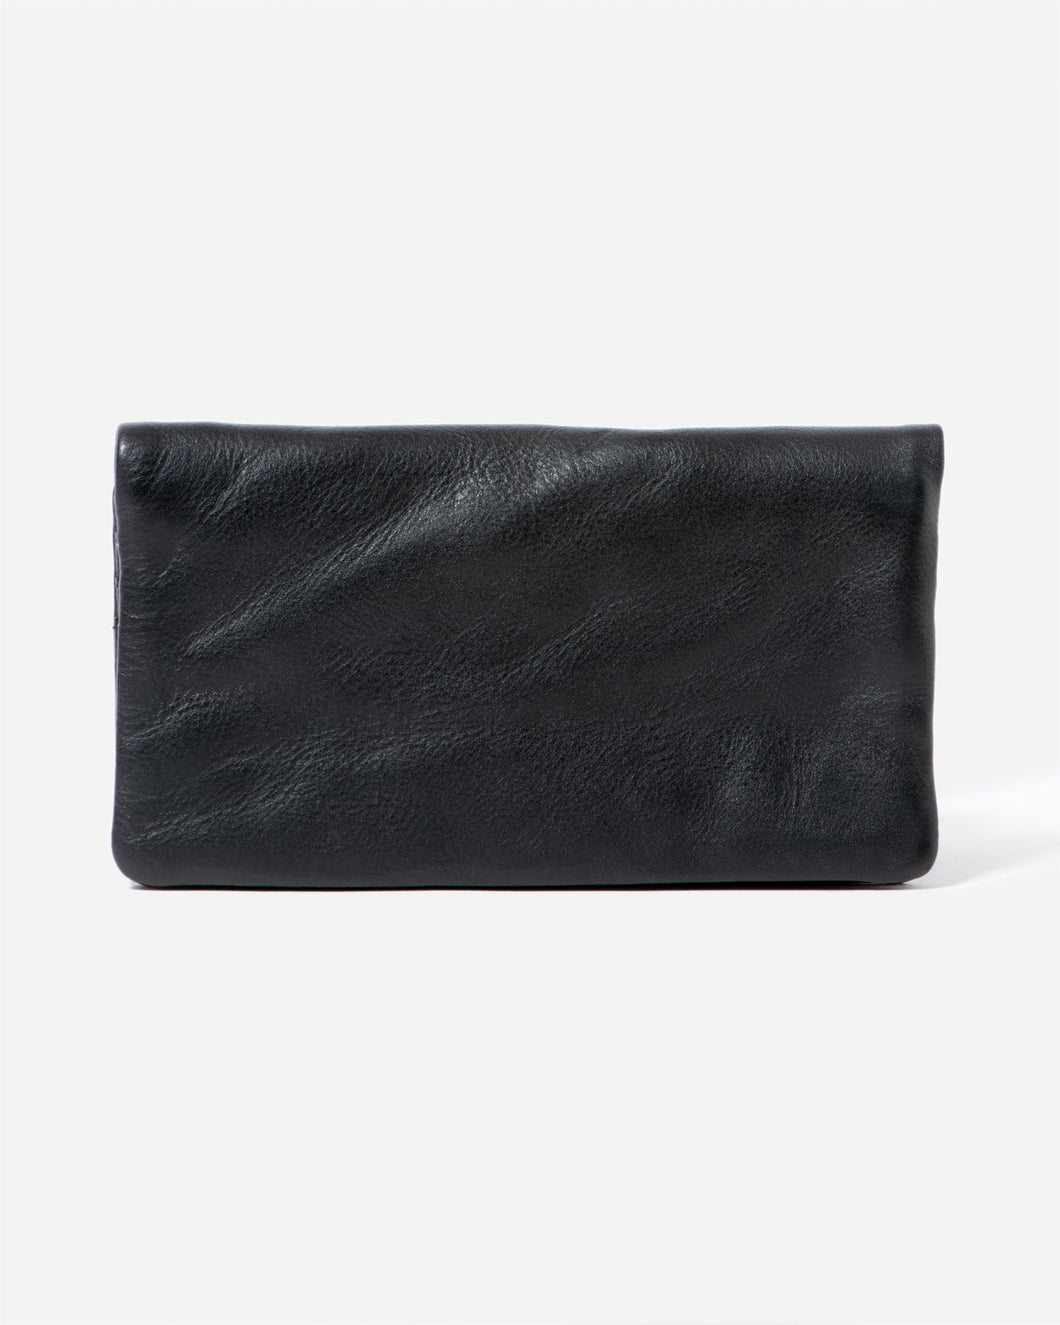 Stitch & Hide Bondi Wallet